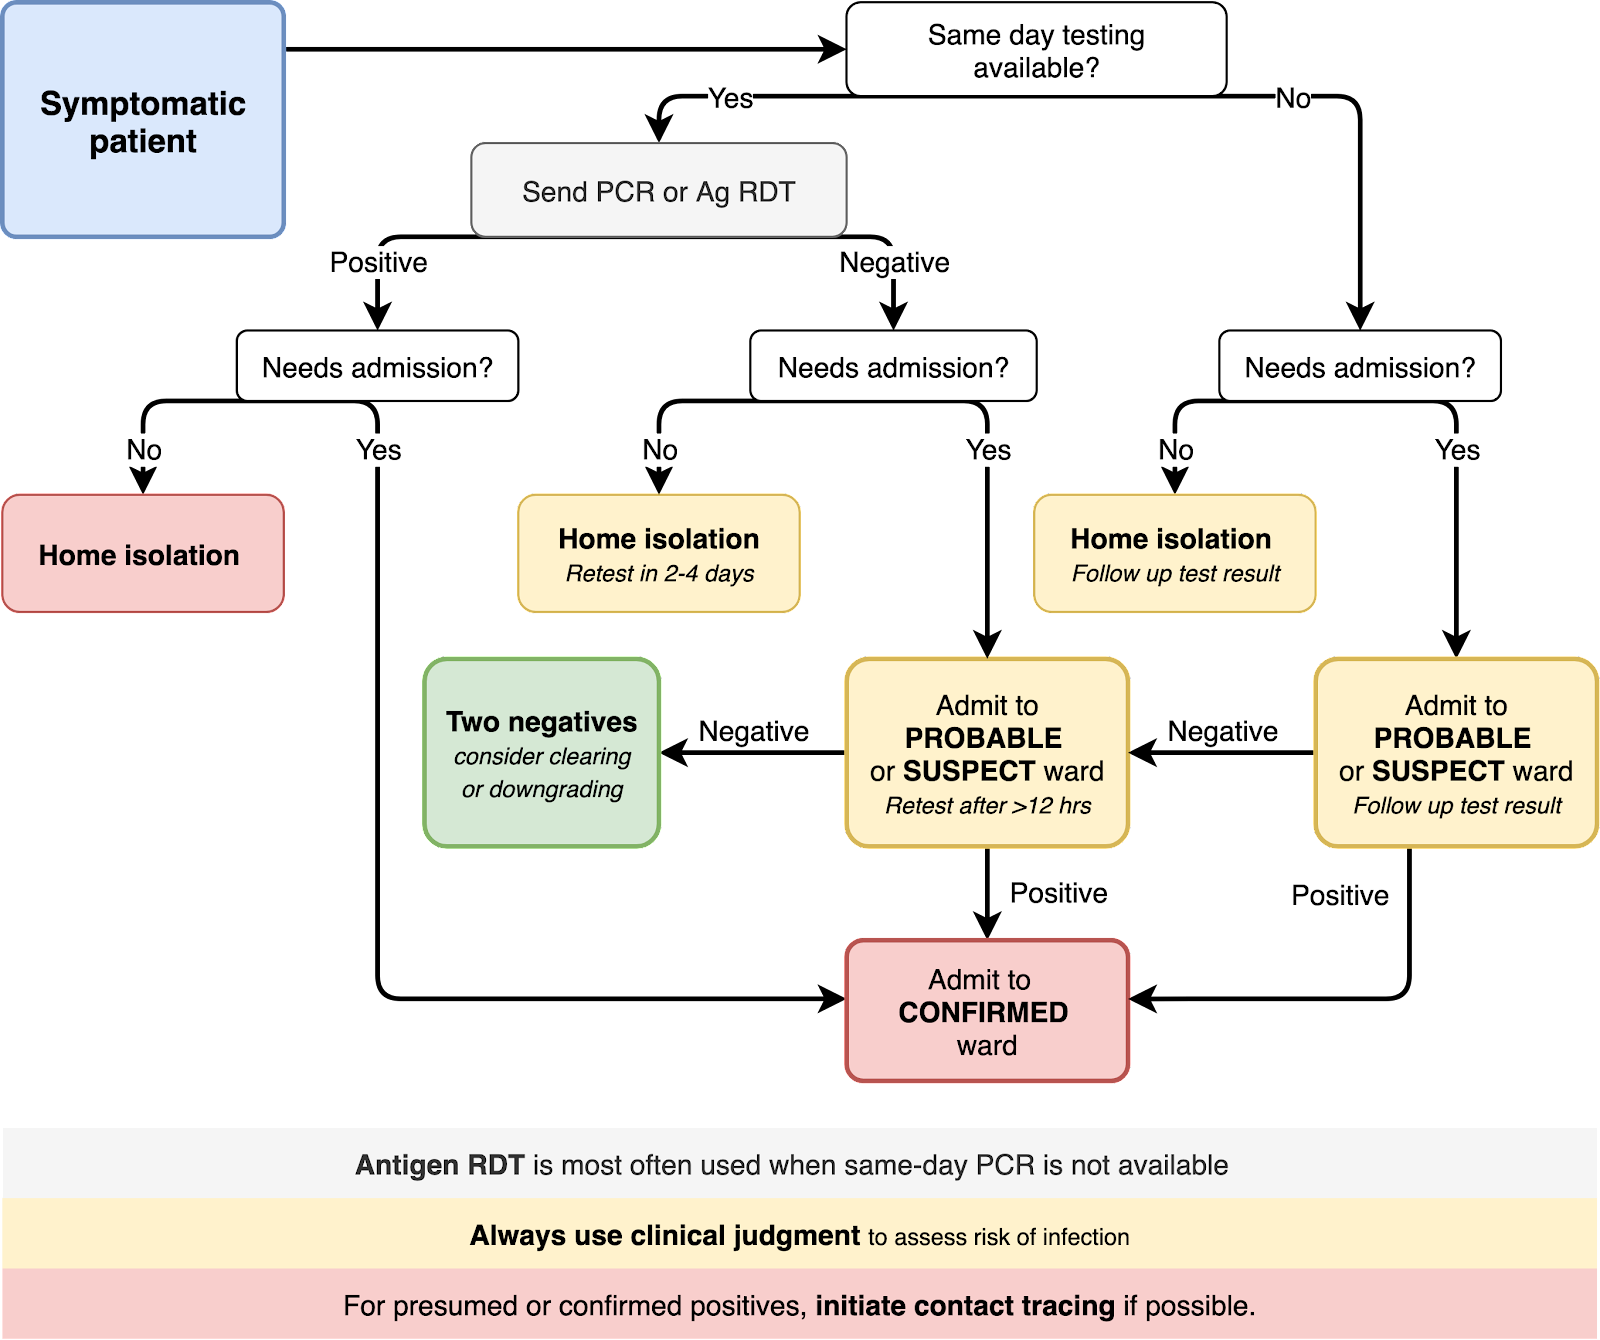 This diagram outlines in flow-chart format content that is covered in the list below.